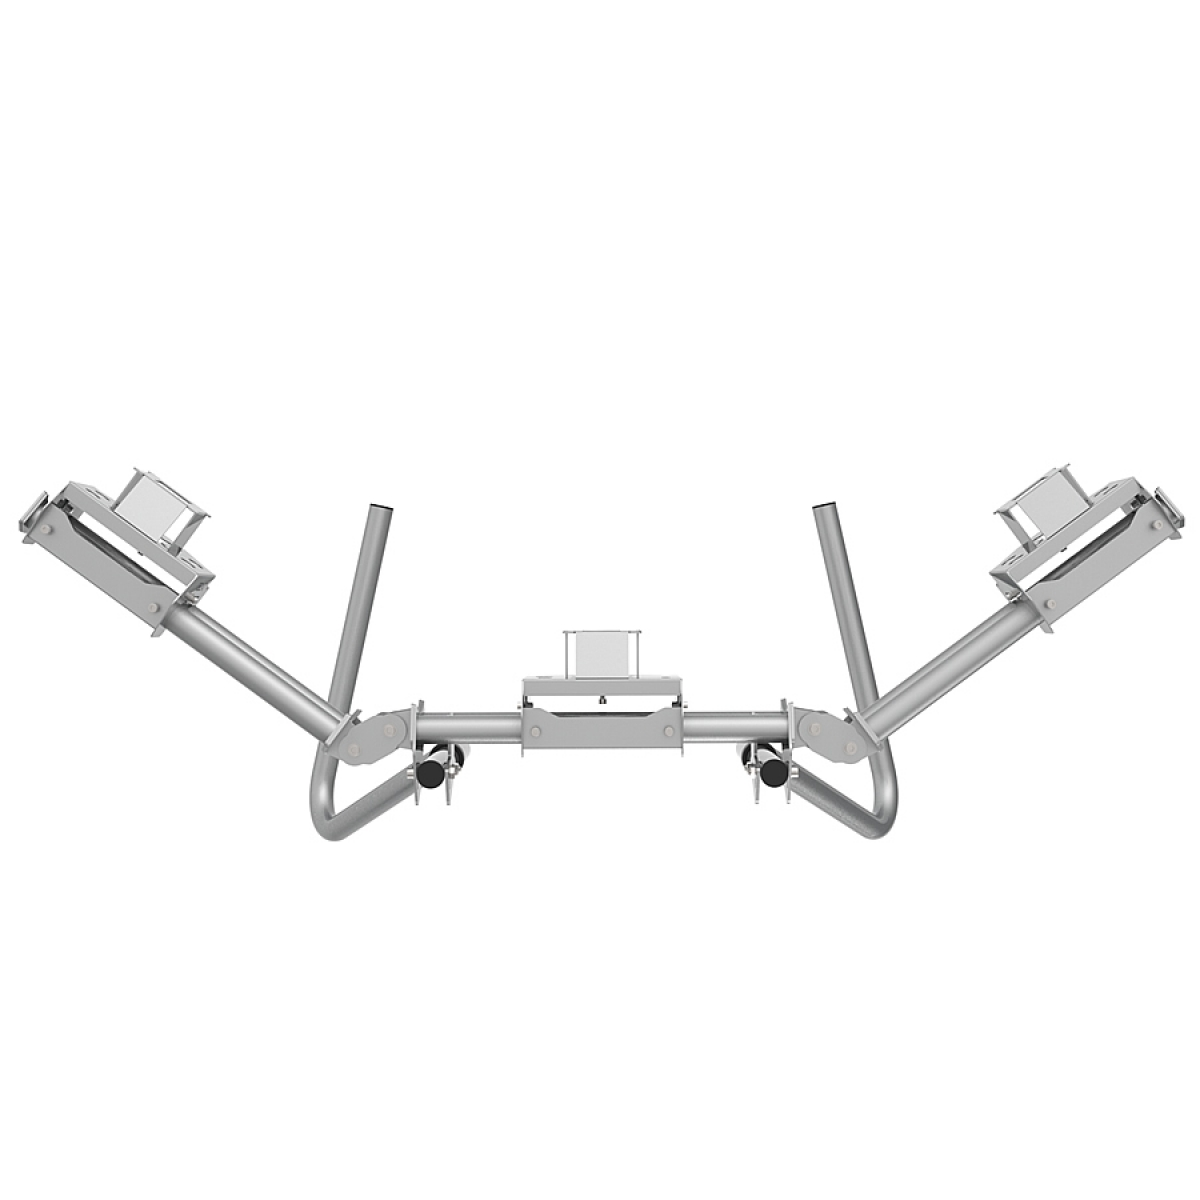 RS STAND T3LM Silver - Triple Ultra Wide Monitor Stand up to 3x29inch 21:9, up to 3x32inch 16:9